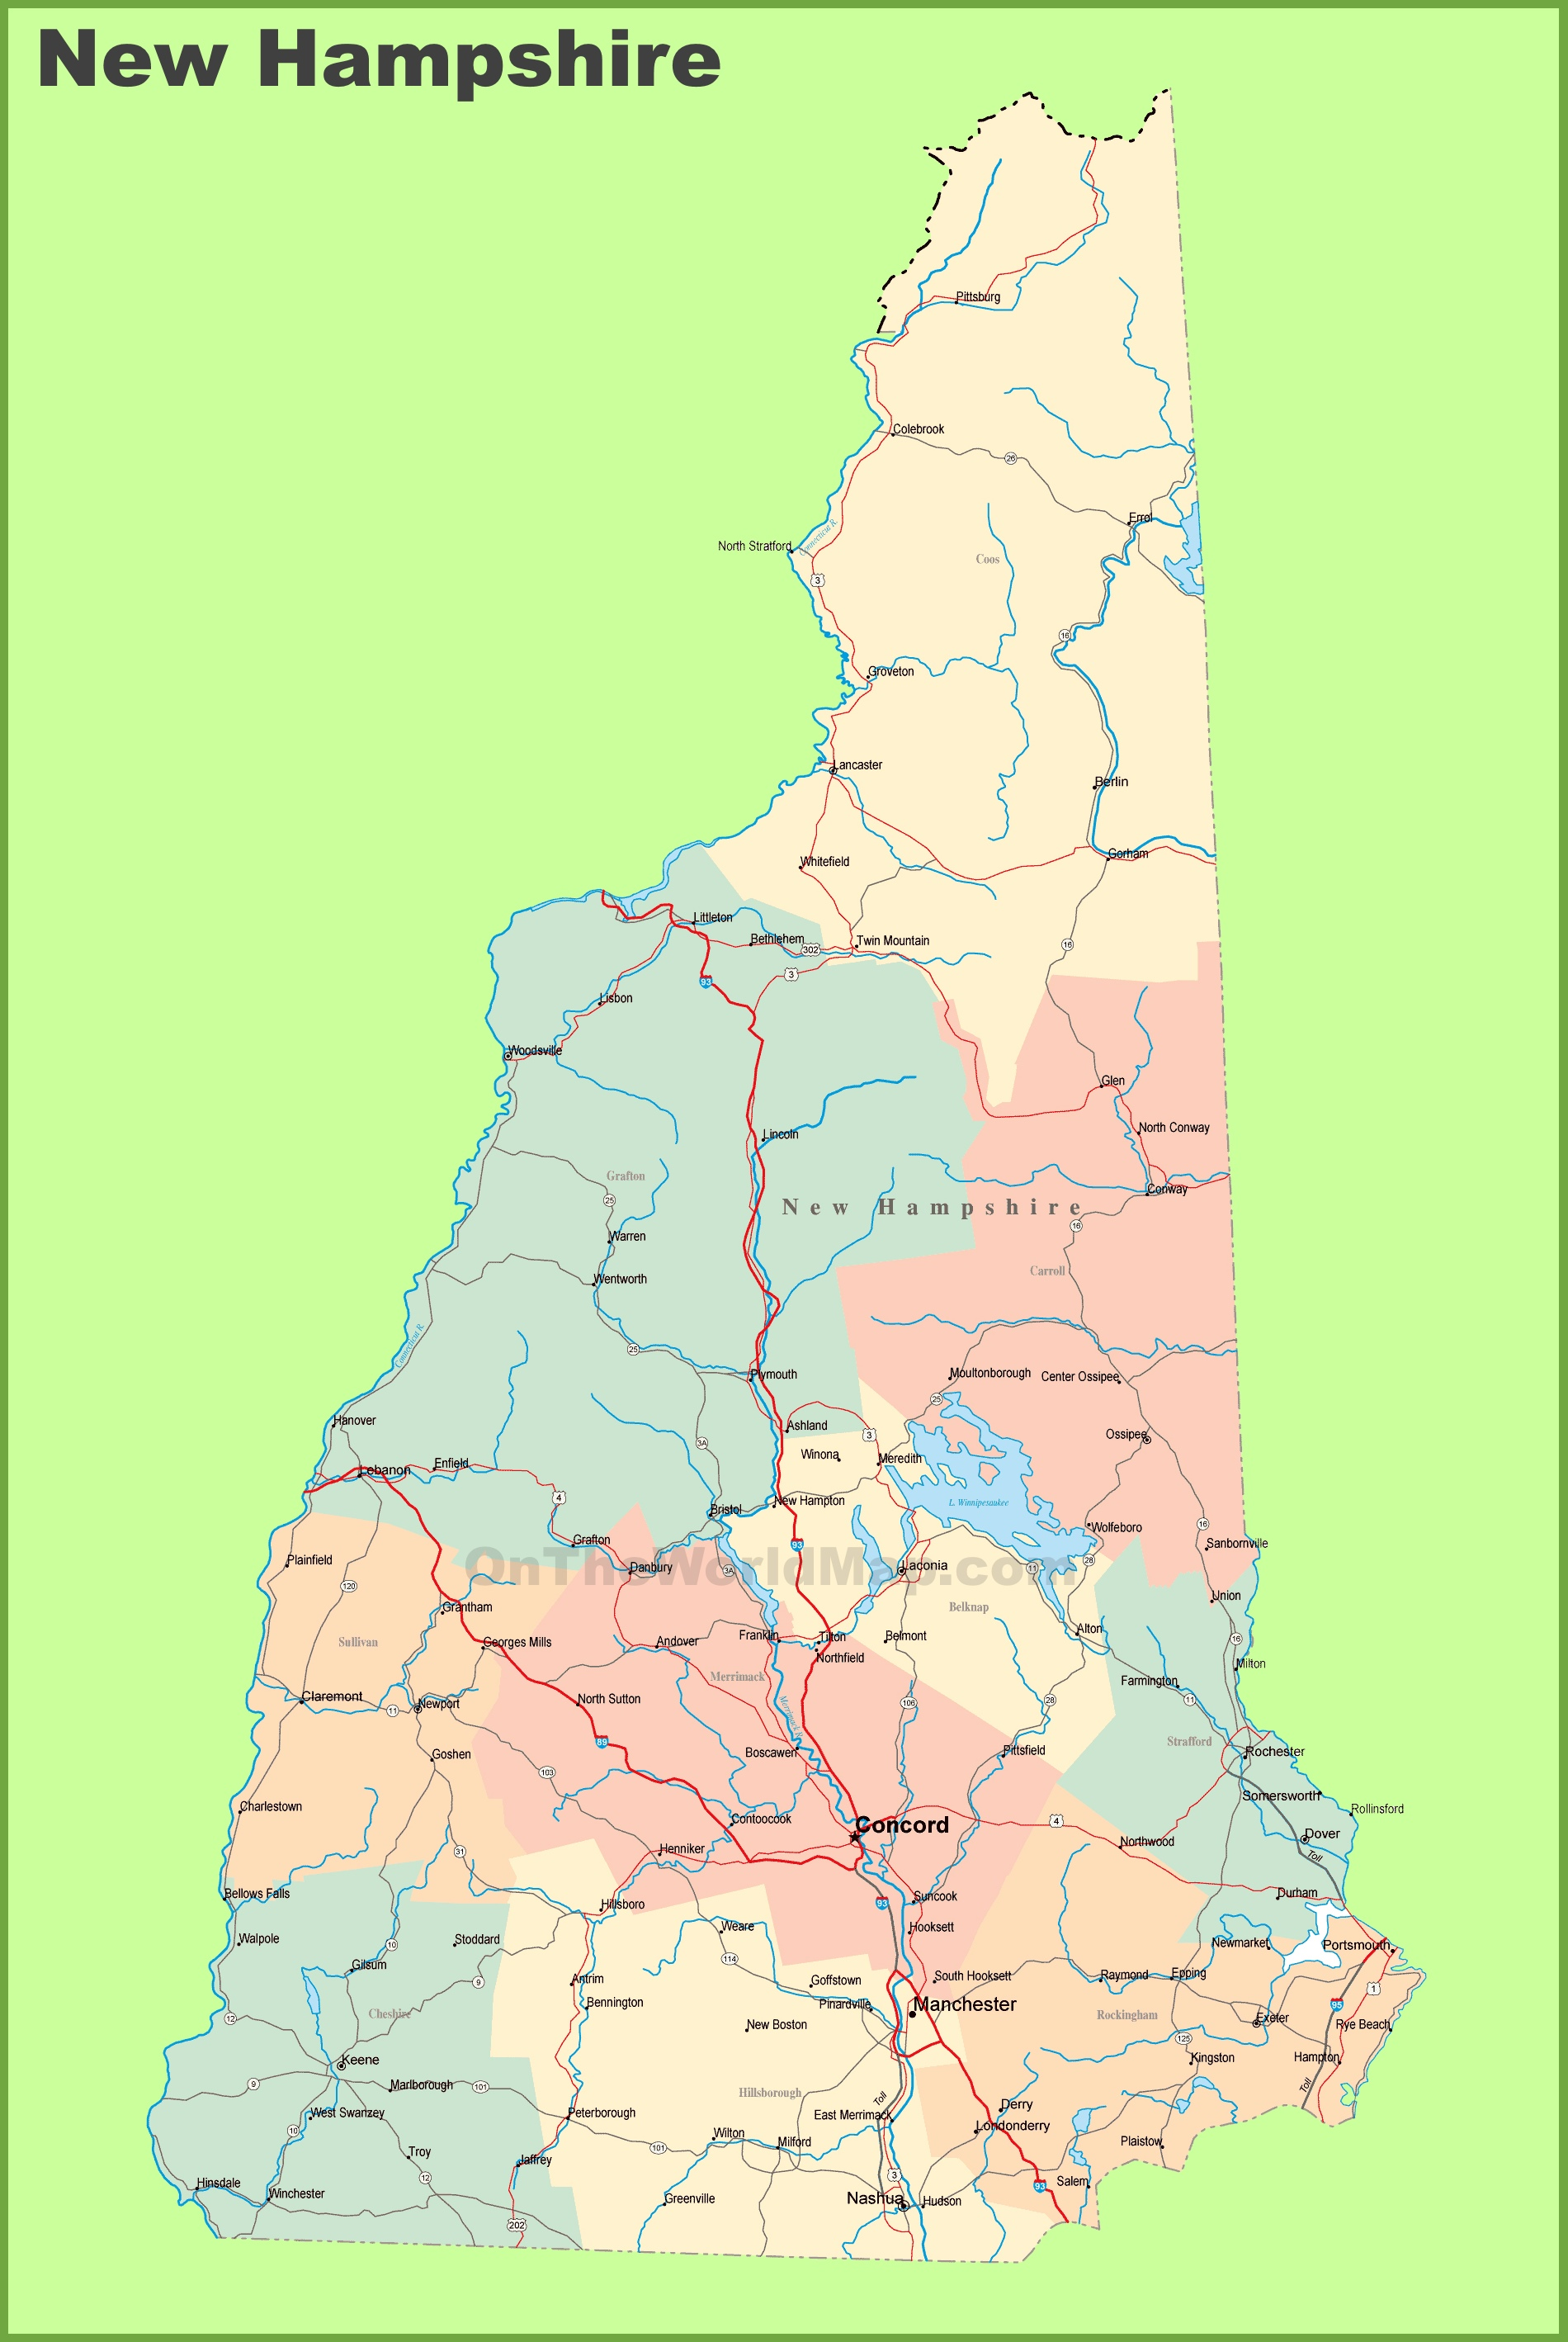 New Hampshire On Map Of Usa.New Hampshire State Maps Usa Maps Of New Hampshire Nh